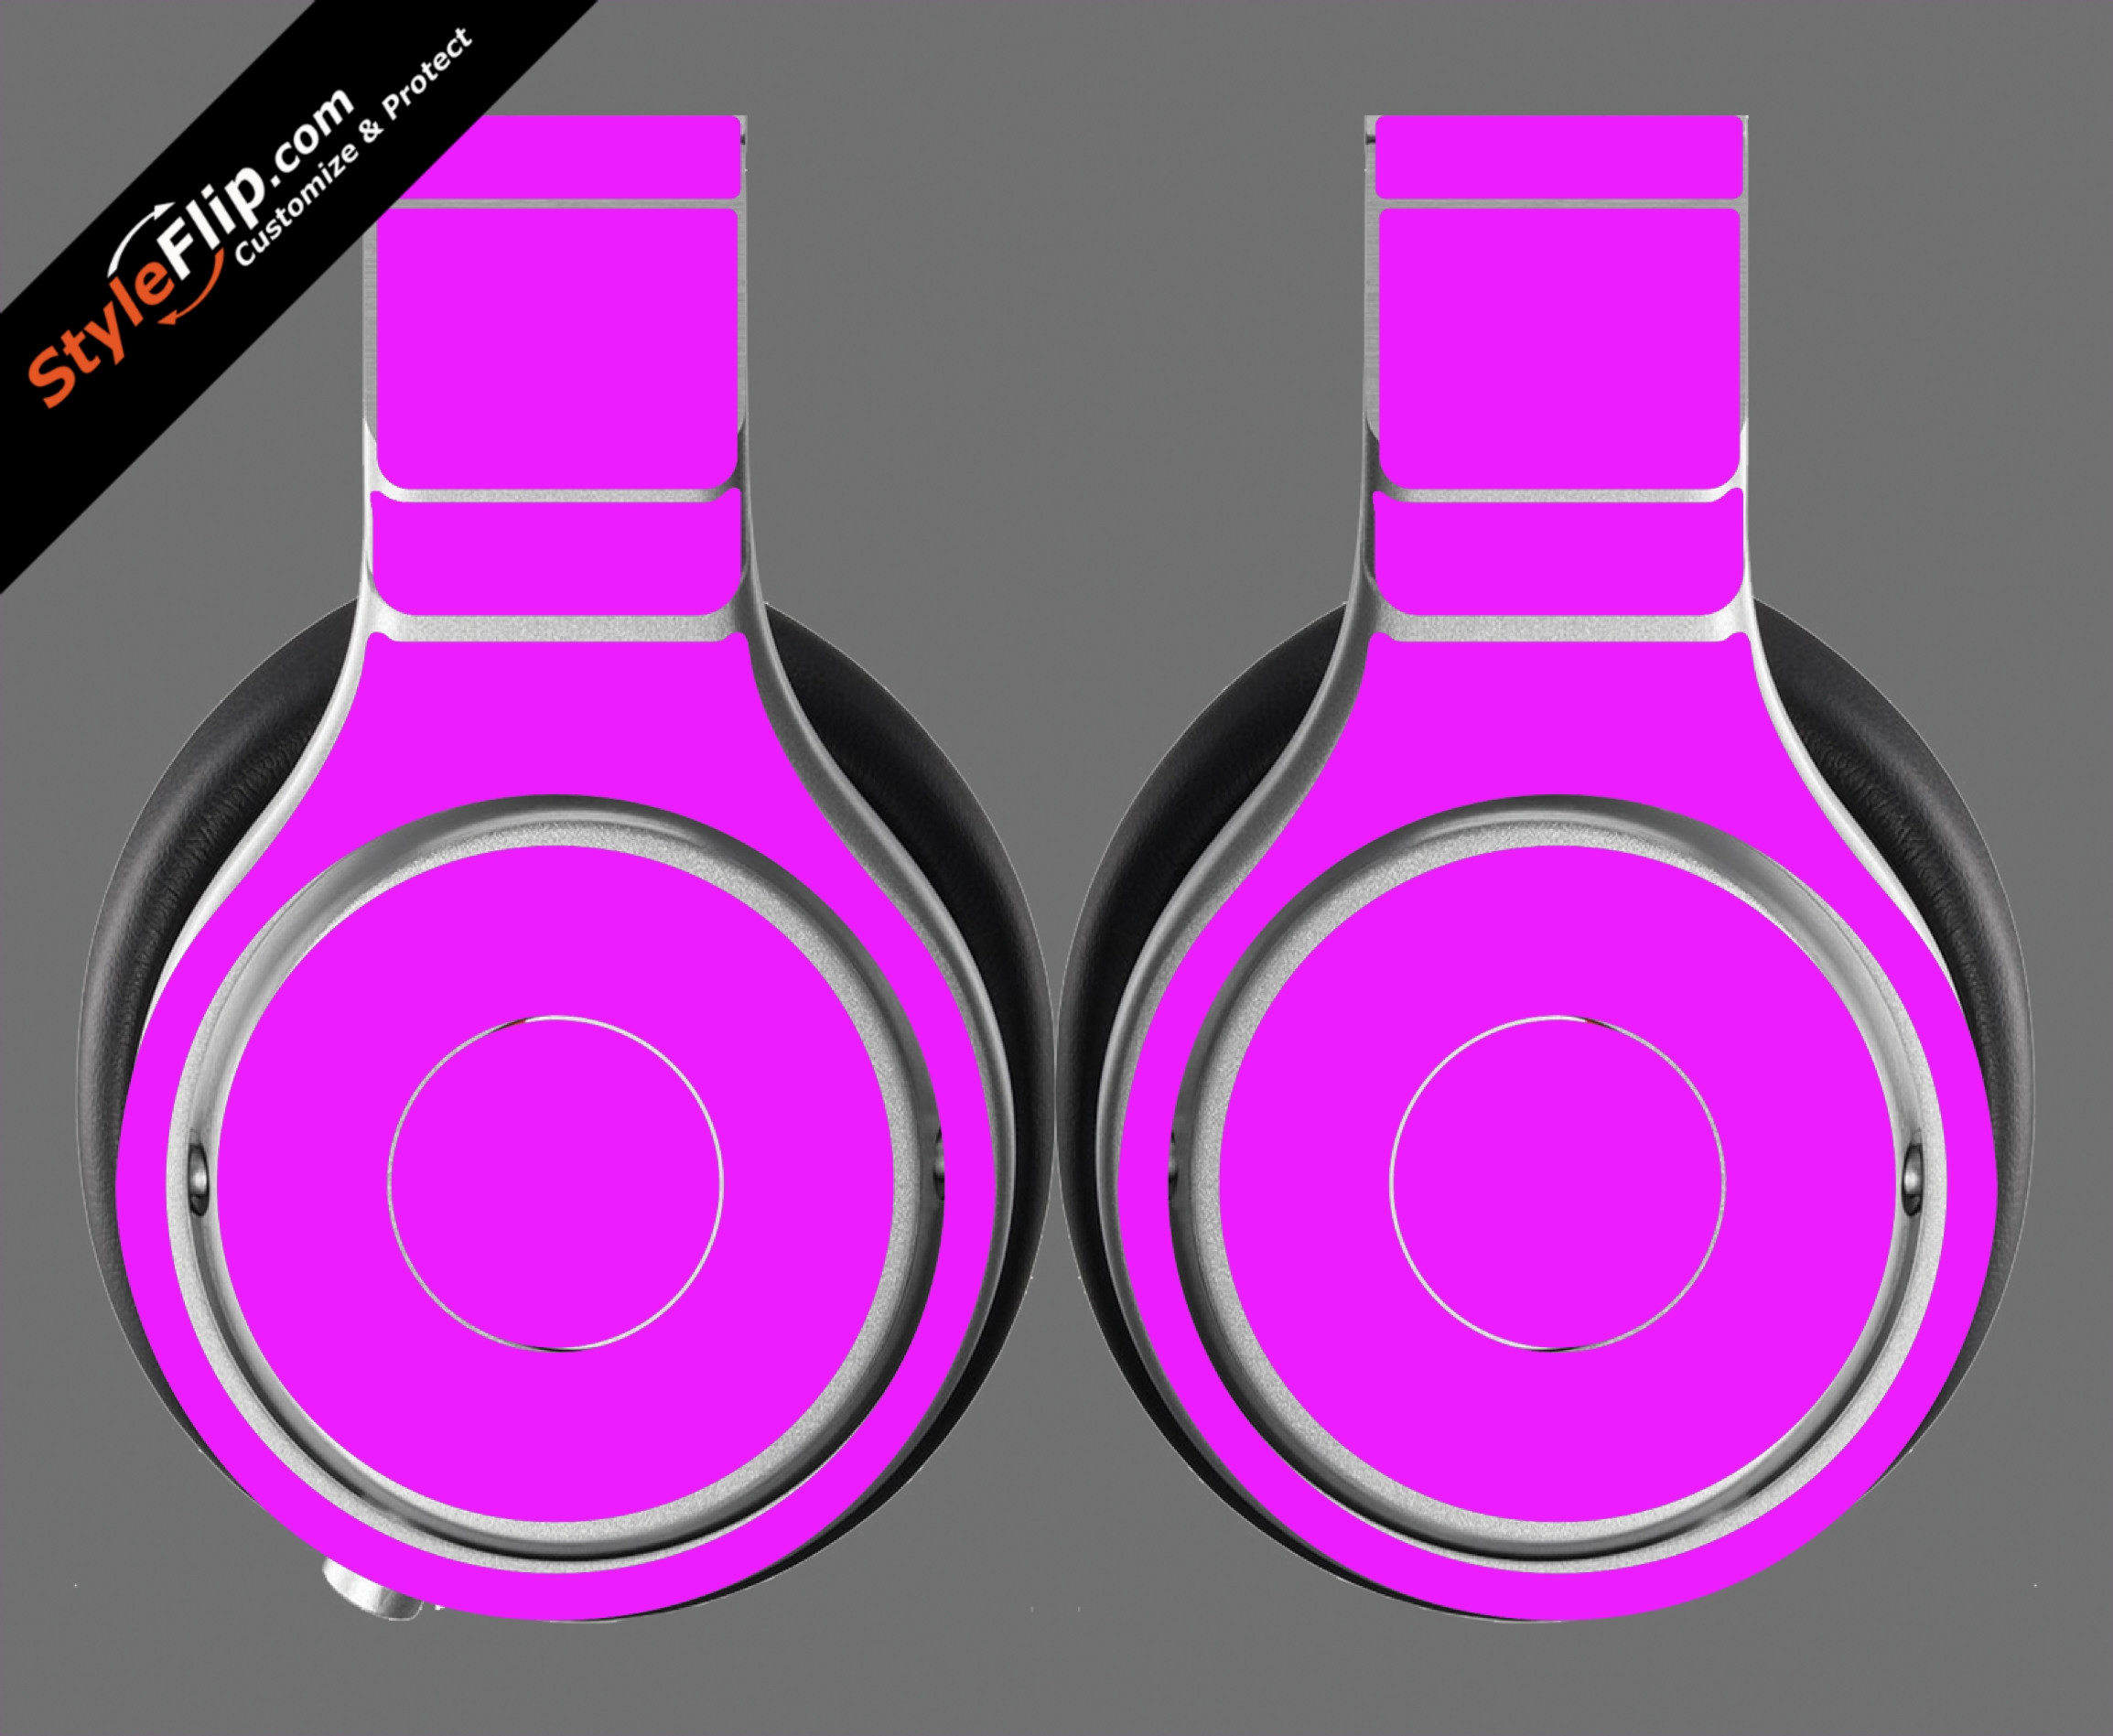 Solid Pink Beats By Dr. Dre Beats Pro Model